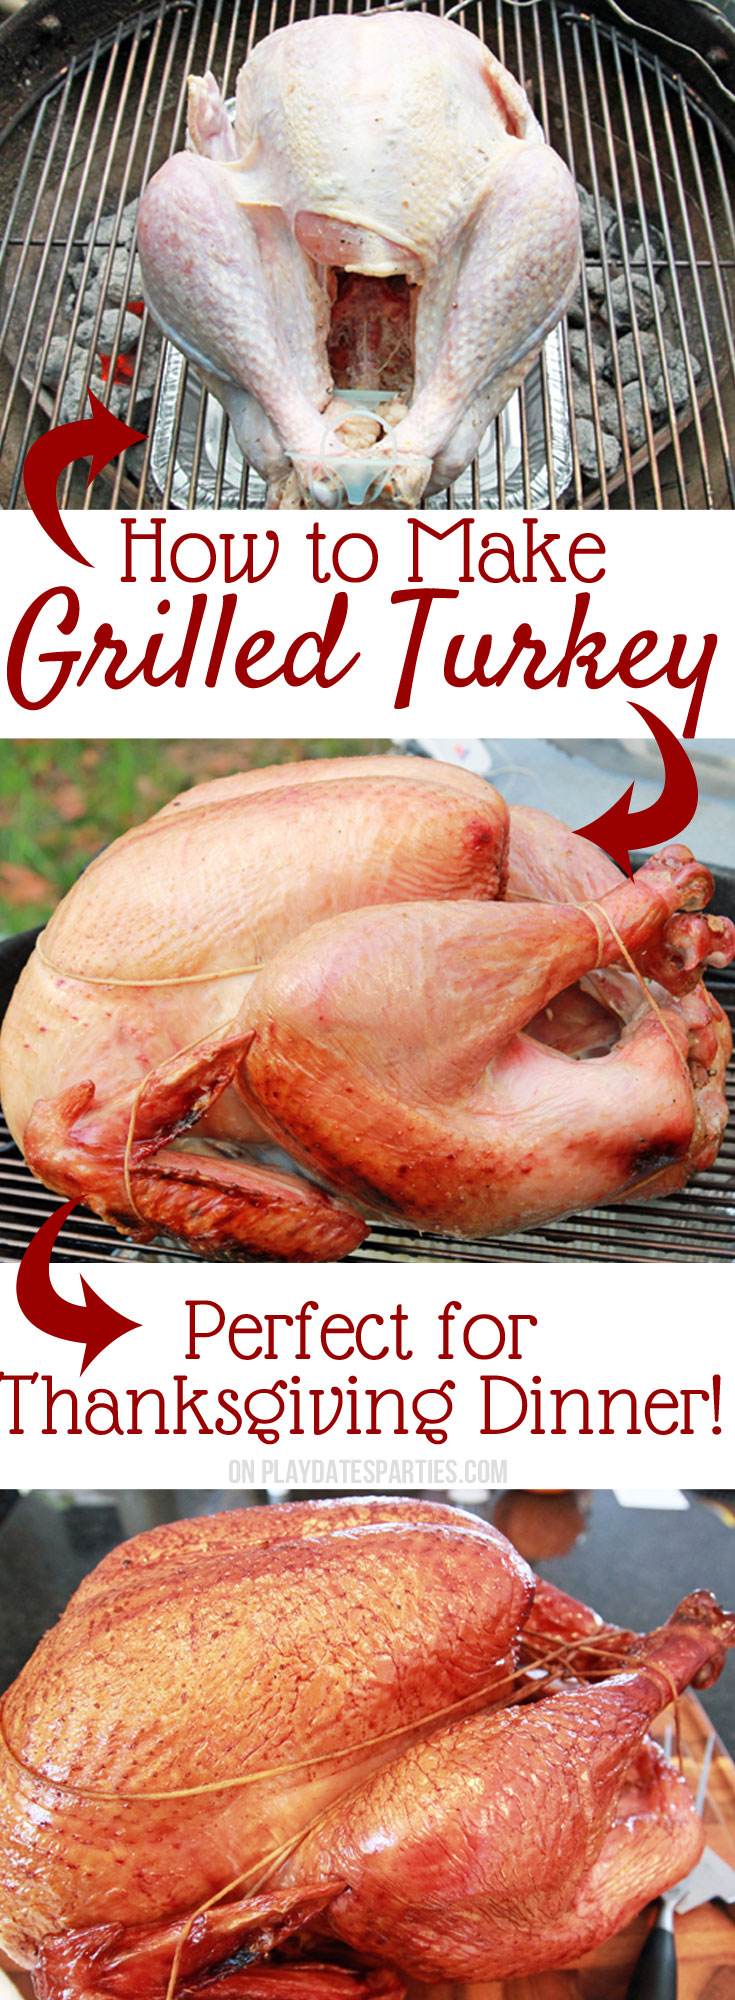 Grilled turkey for Thanksgiving dinner is the BEST! The smokey flavor is fantastic for your holiday dinner and amazing in leftovers. Find out how we cooked an 18-pound turkey on a charcoal grill, and freed up our oven for those delicious side dishes!